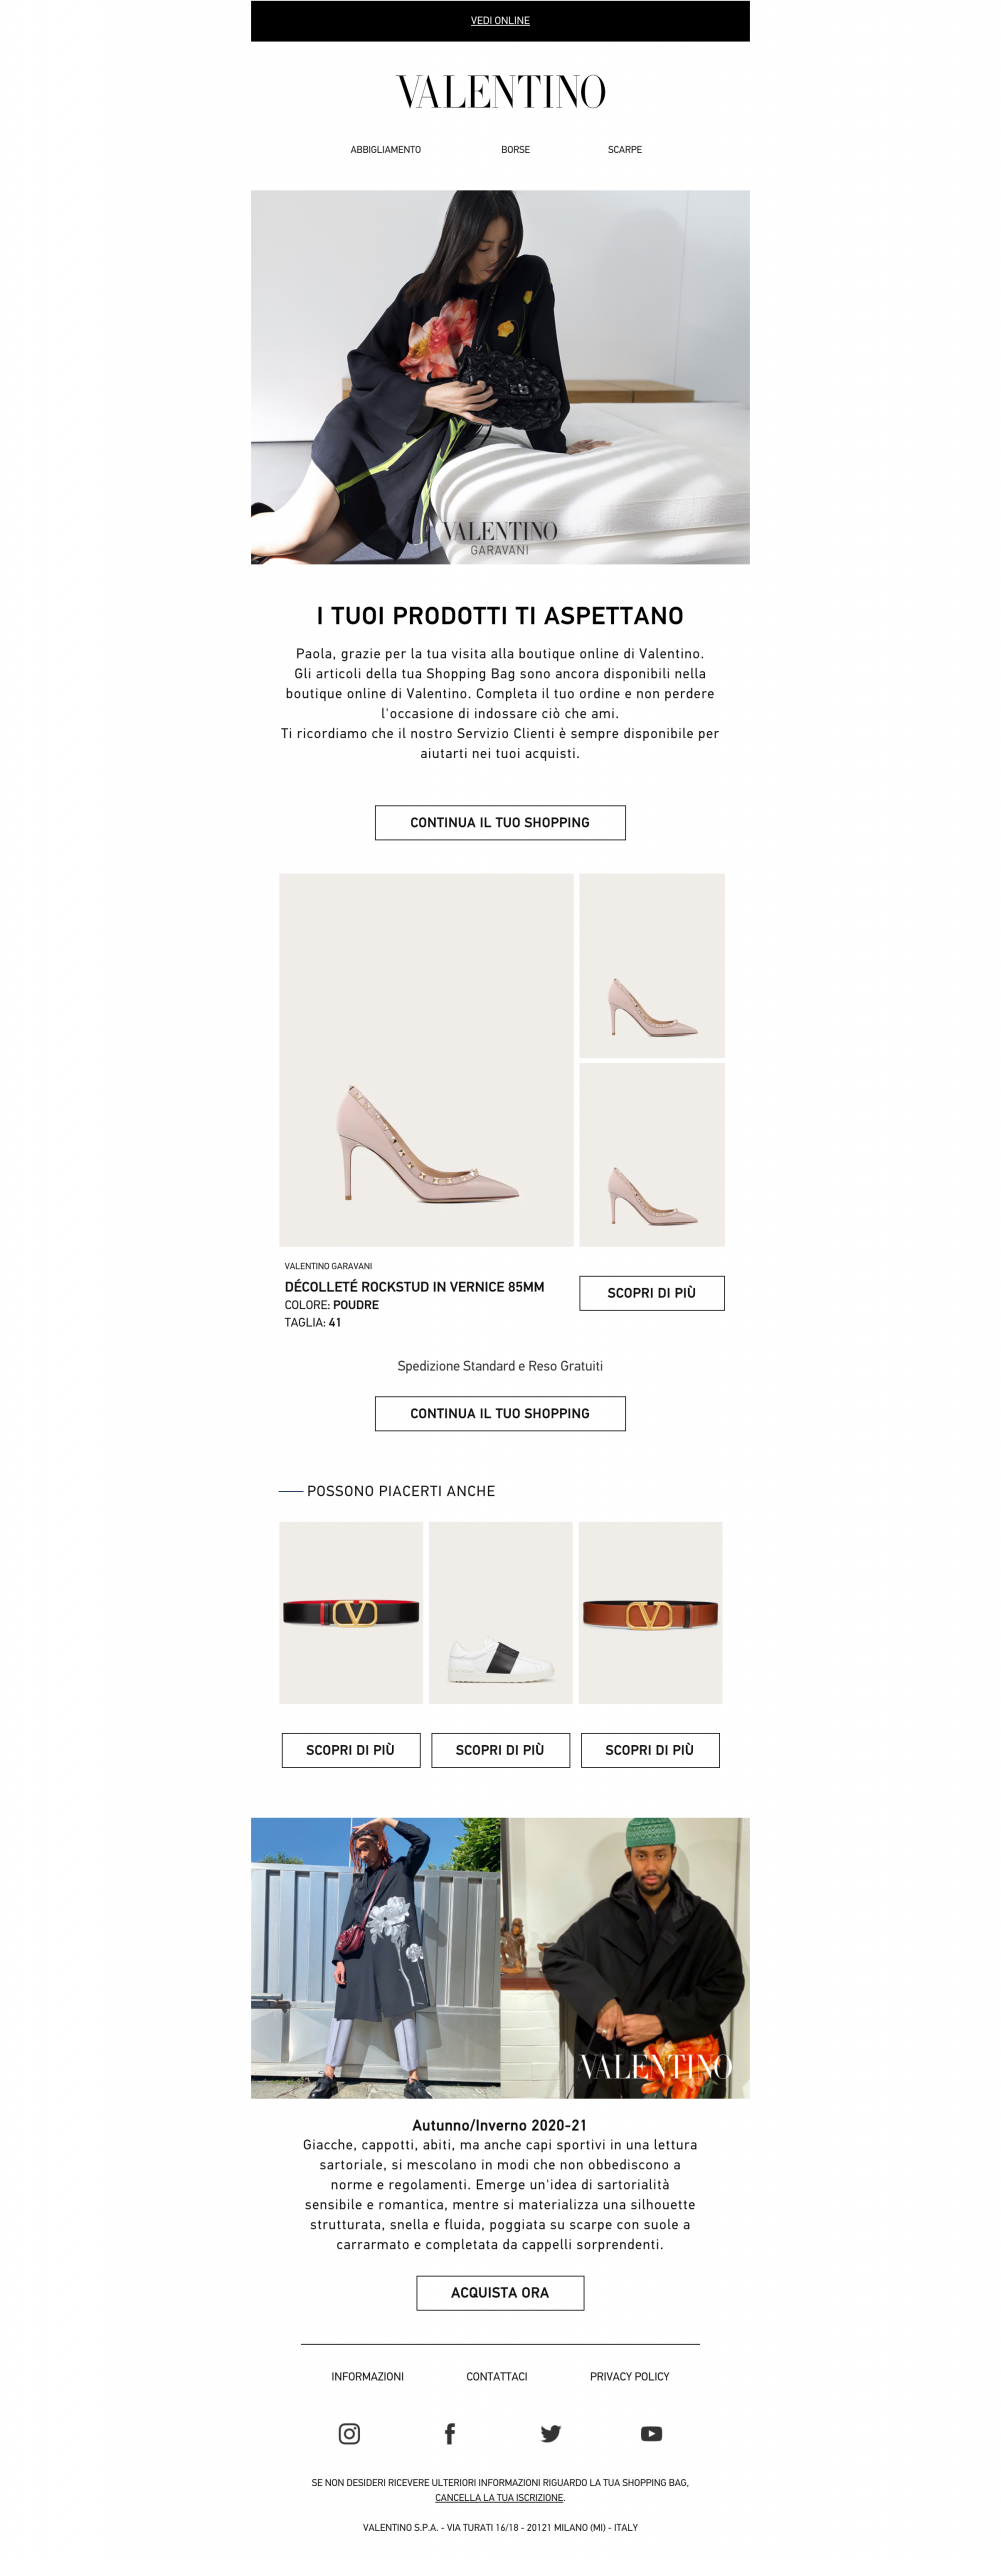 SaleCycle per Valentino: email di cross-selling e up-selling.